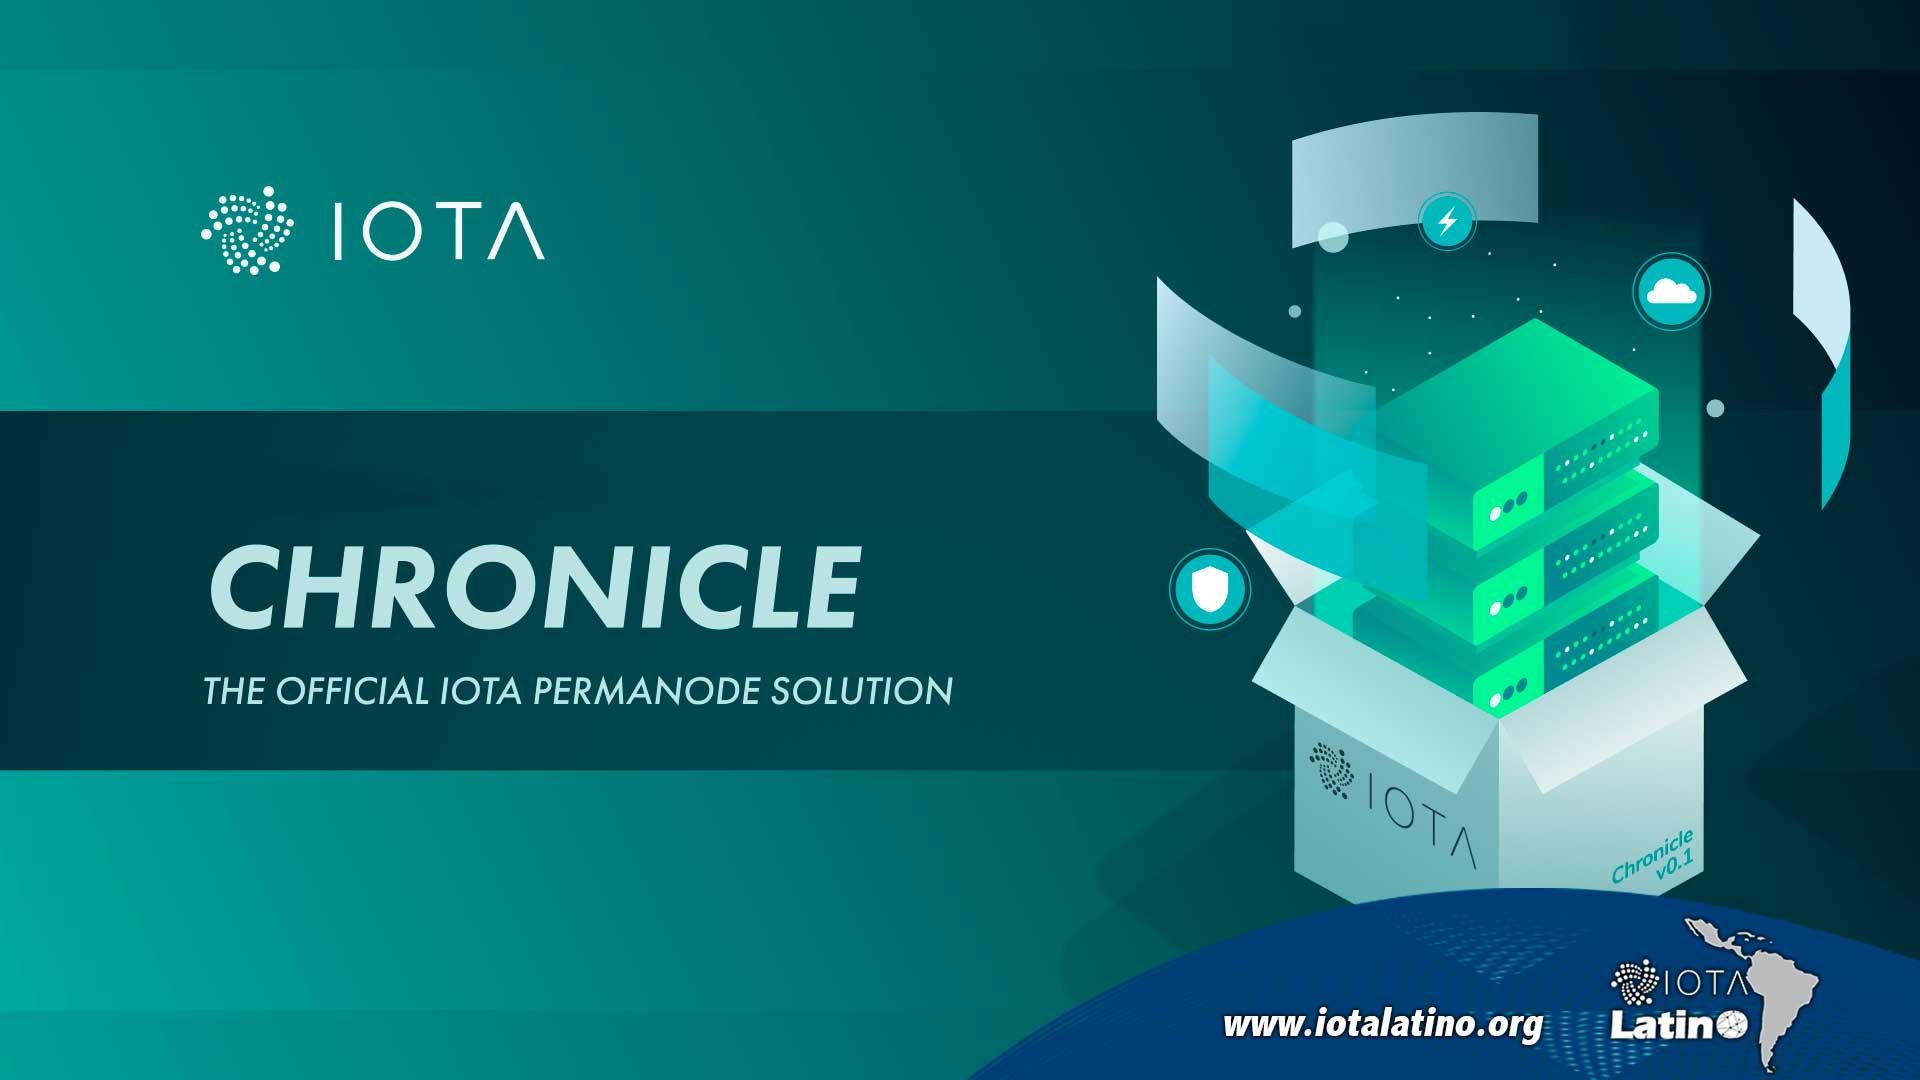 Chronicle de IOTA - IOTA Latino